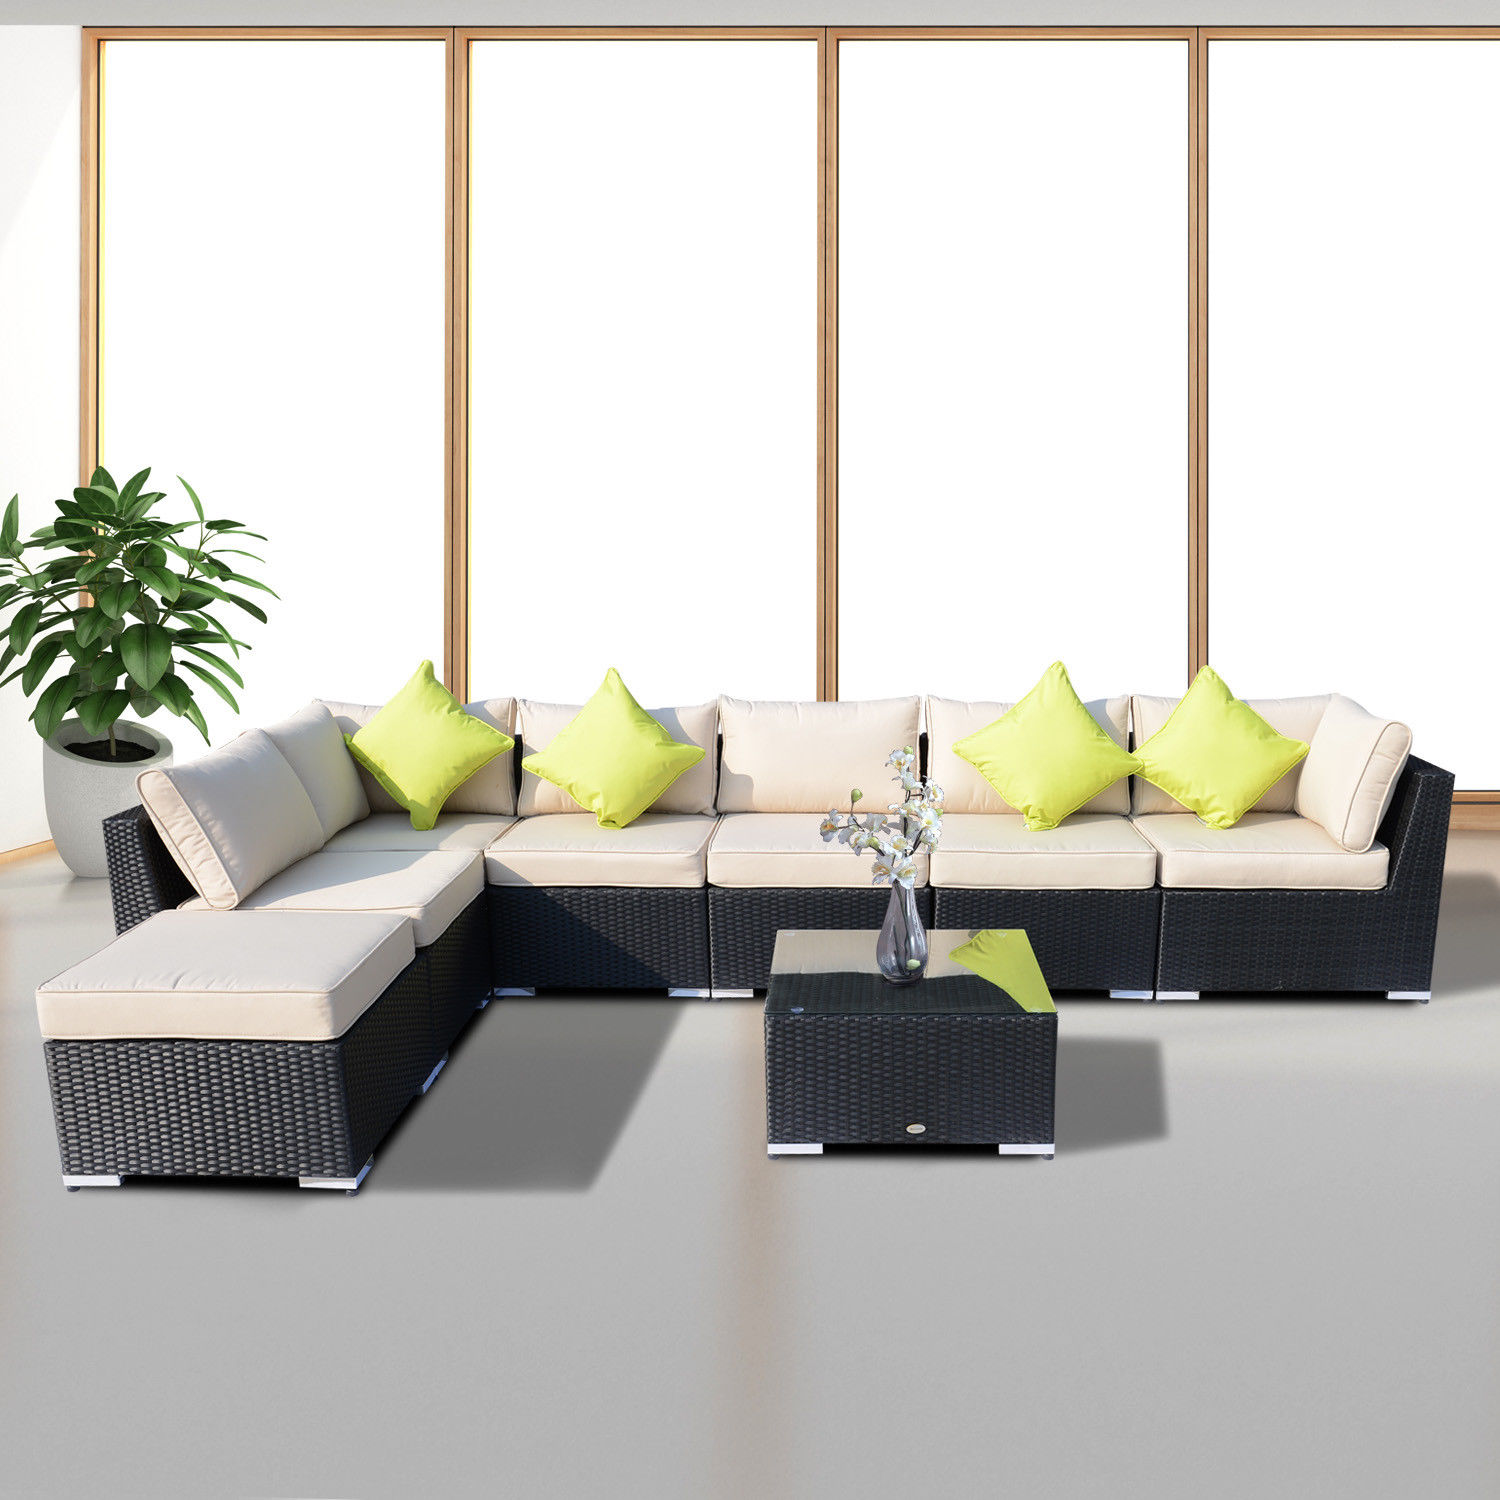 Rattan Corner Sofa Garden Set: Rattan Outdoor Garden Furniture Patio Corner Sofa Set